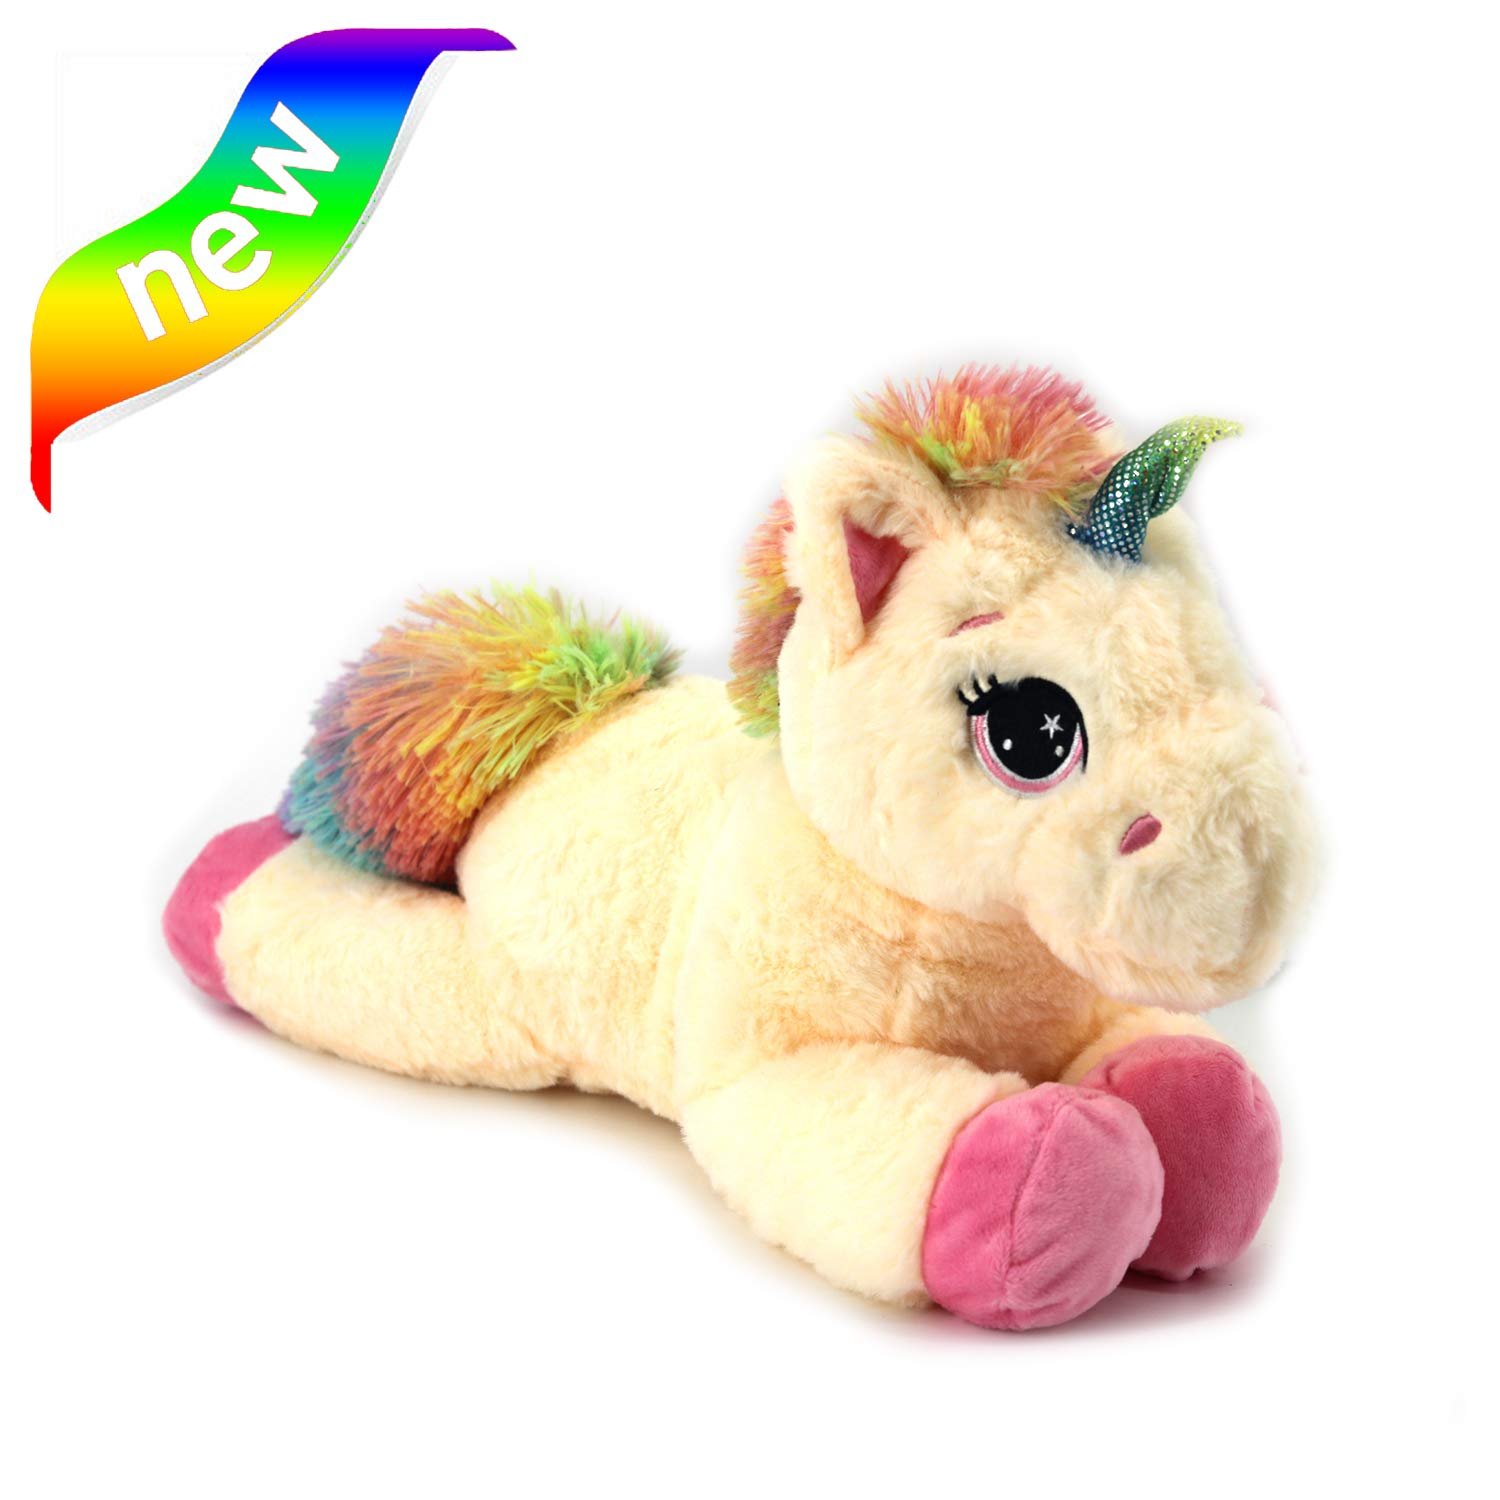 Unicorn Stuffed Animal - Cute Unicorn Gifts Large 15.8'' Rainbow Unicorns Plush Toy, Gift Packaged for Graduation, Birthday or Valentines Gift or Christmas or Thanksgiving or New Year for toddlers, uni